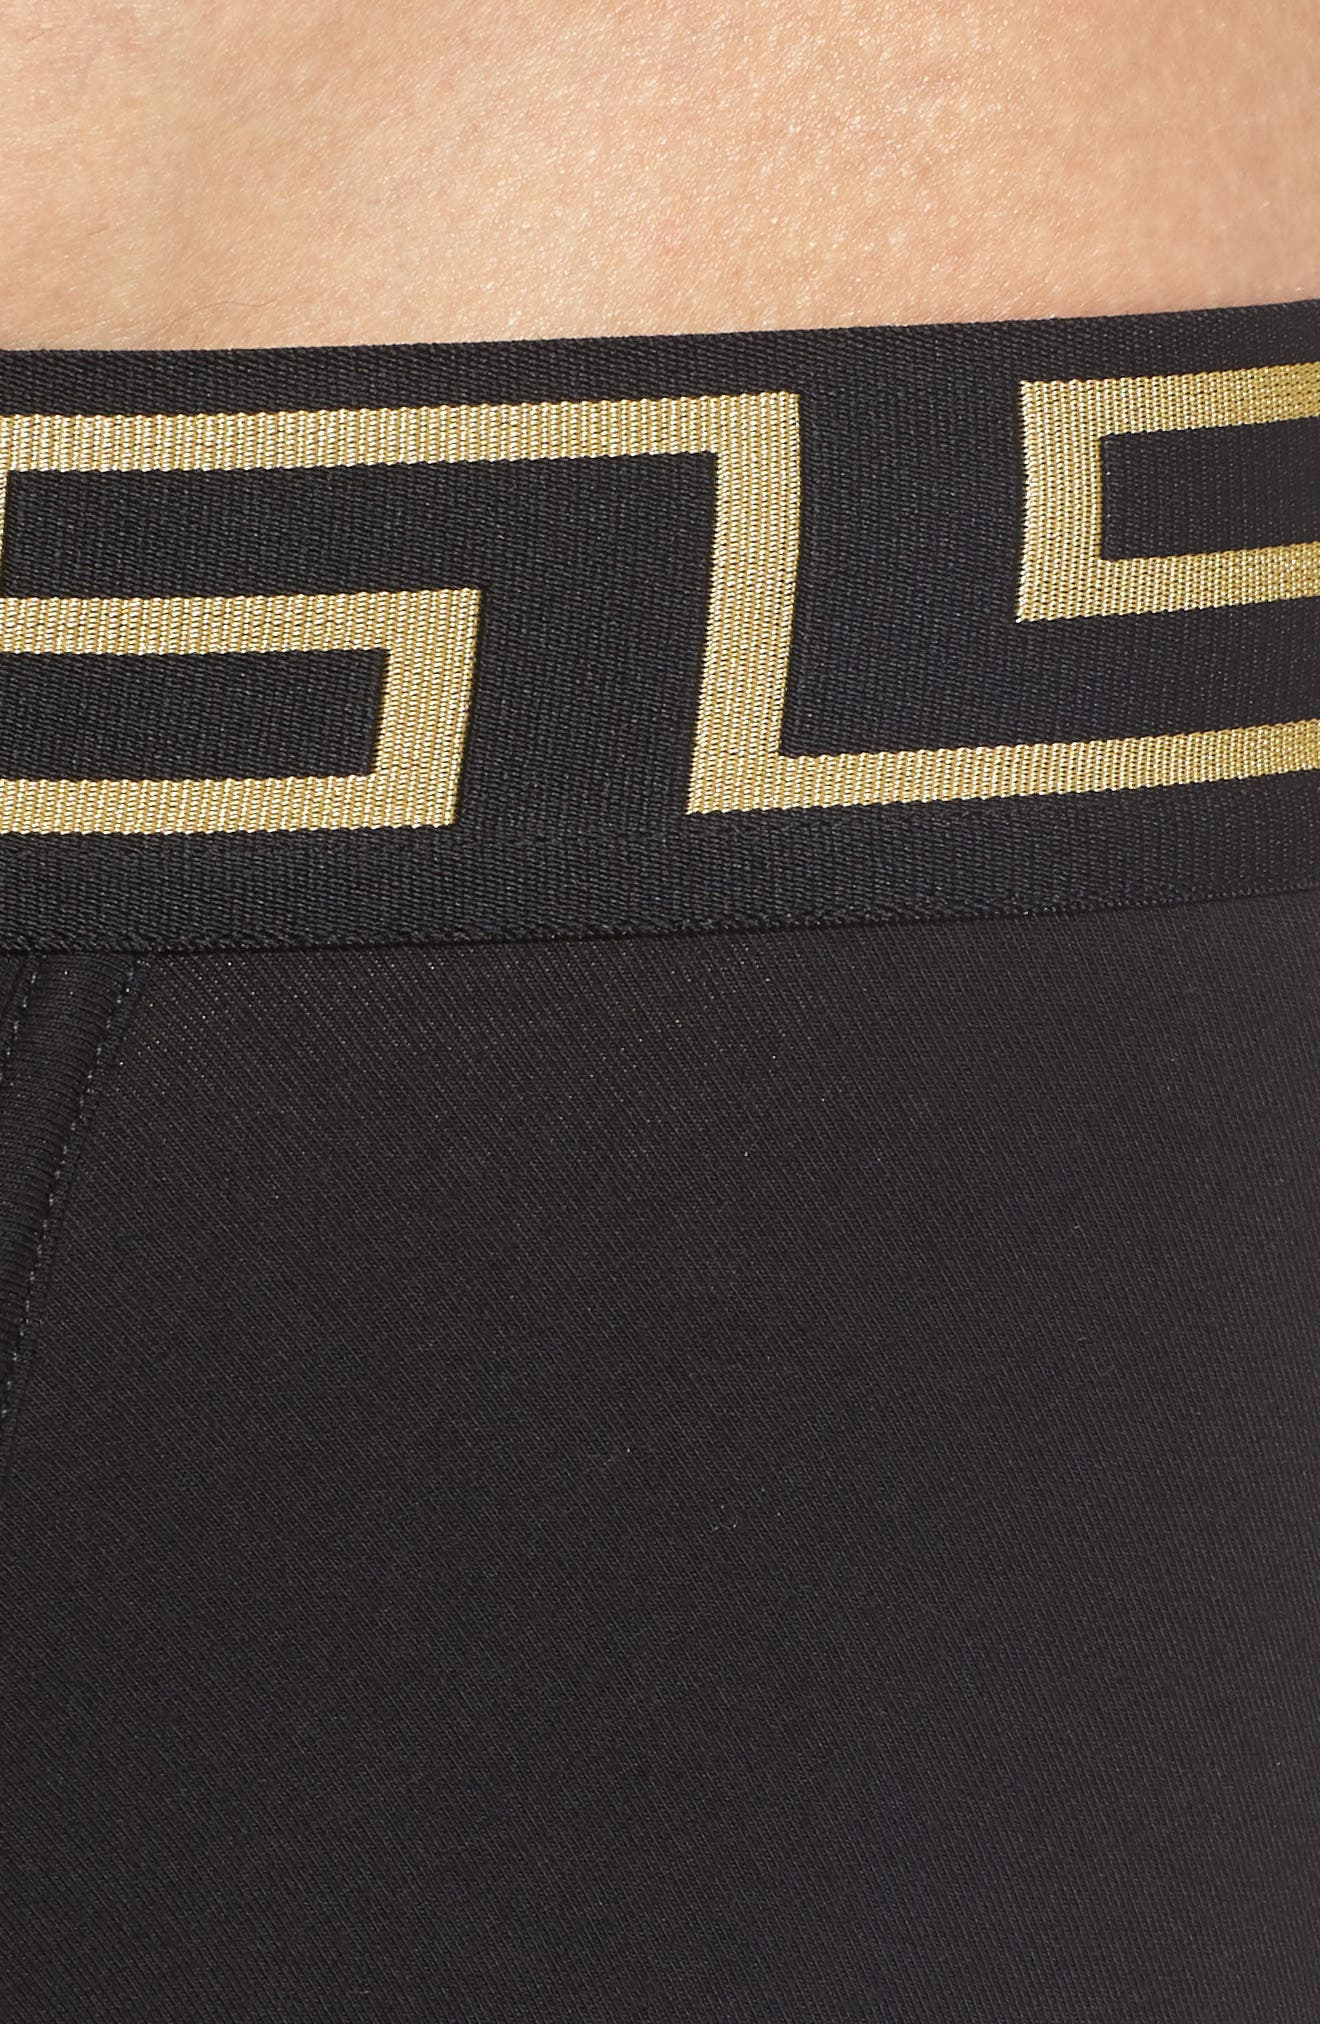 Versace Collection 2-Pack Low Rise Trunks,                             Alternate thumbnail 5, color,                             Black/ Gold